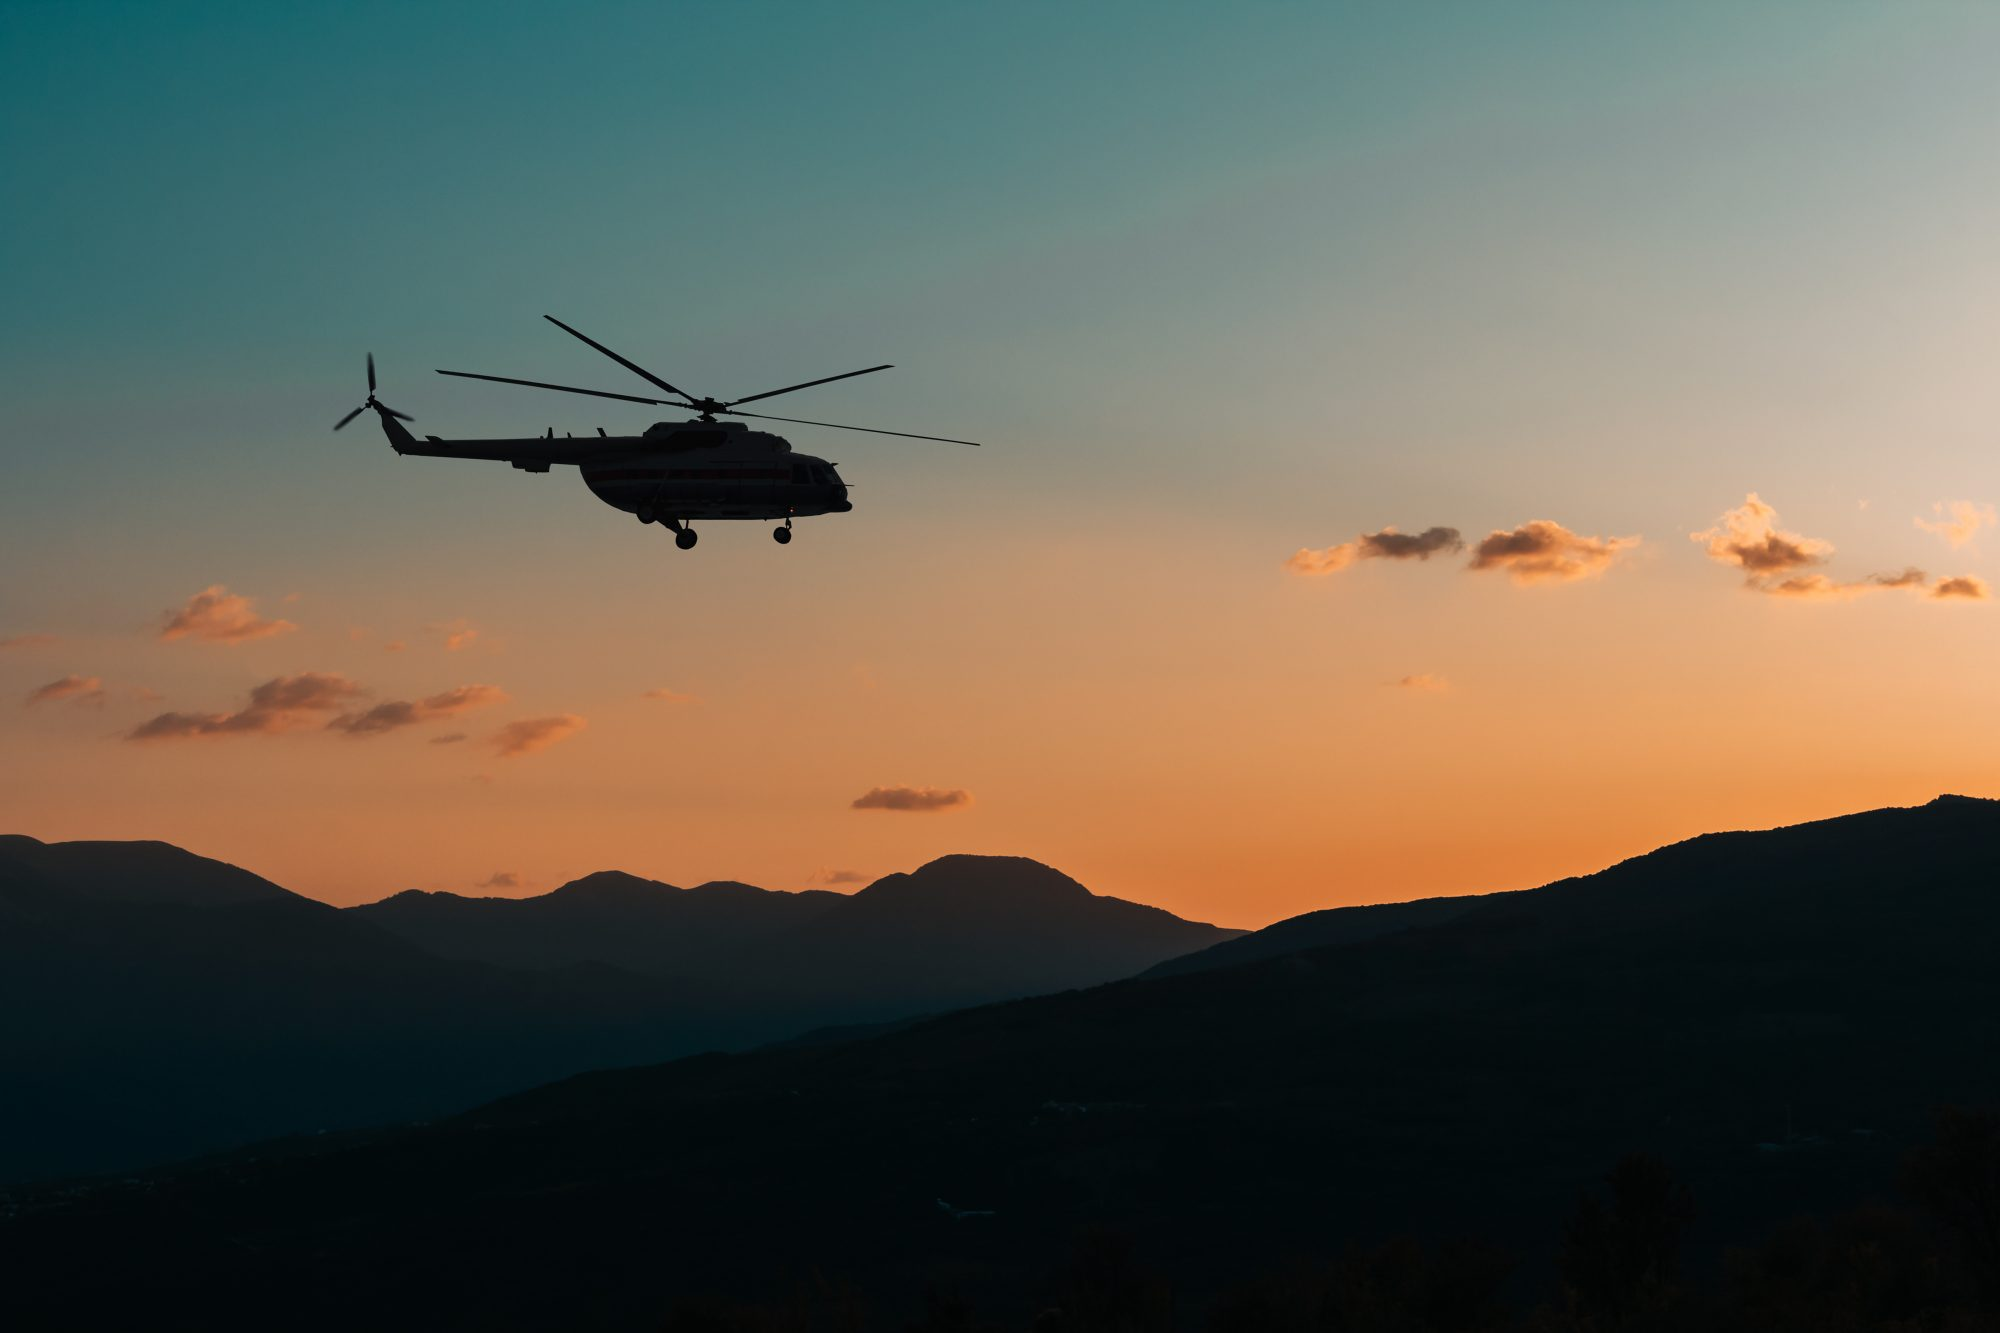 Helicopter flies in the mountains at sunset in the dark. Night rescue operation in a remote location, the search for missing people. Beautiful mountain landscape